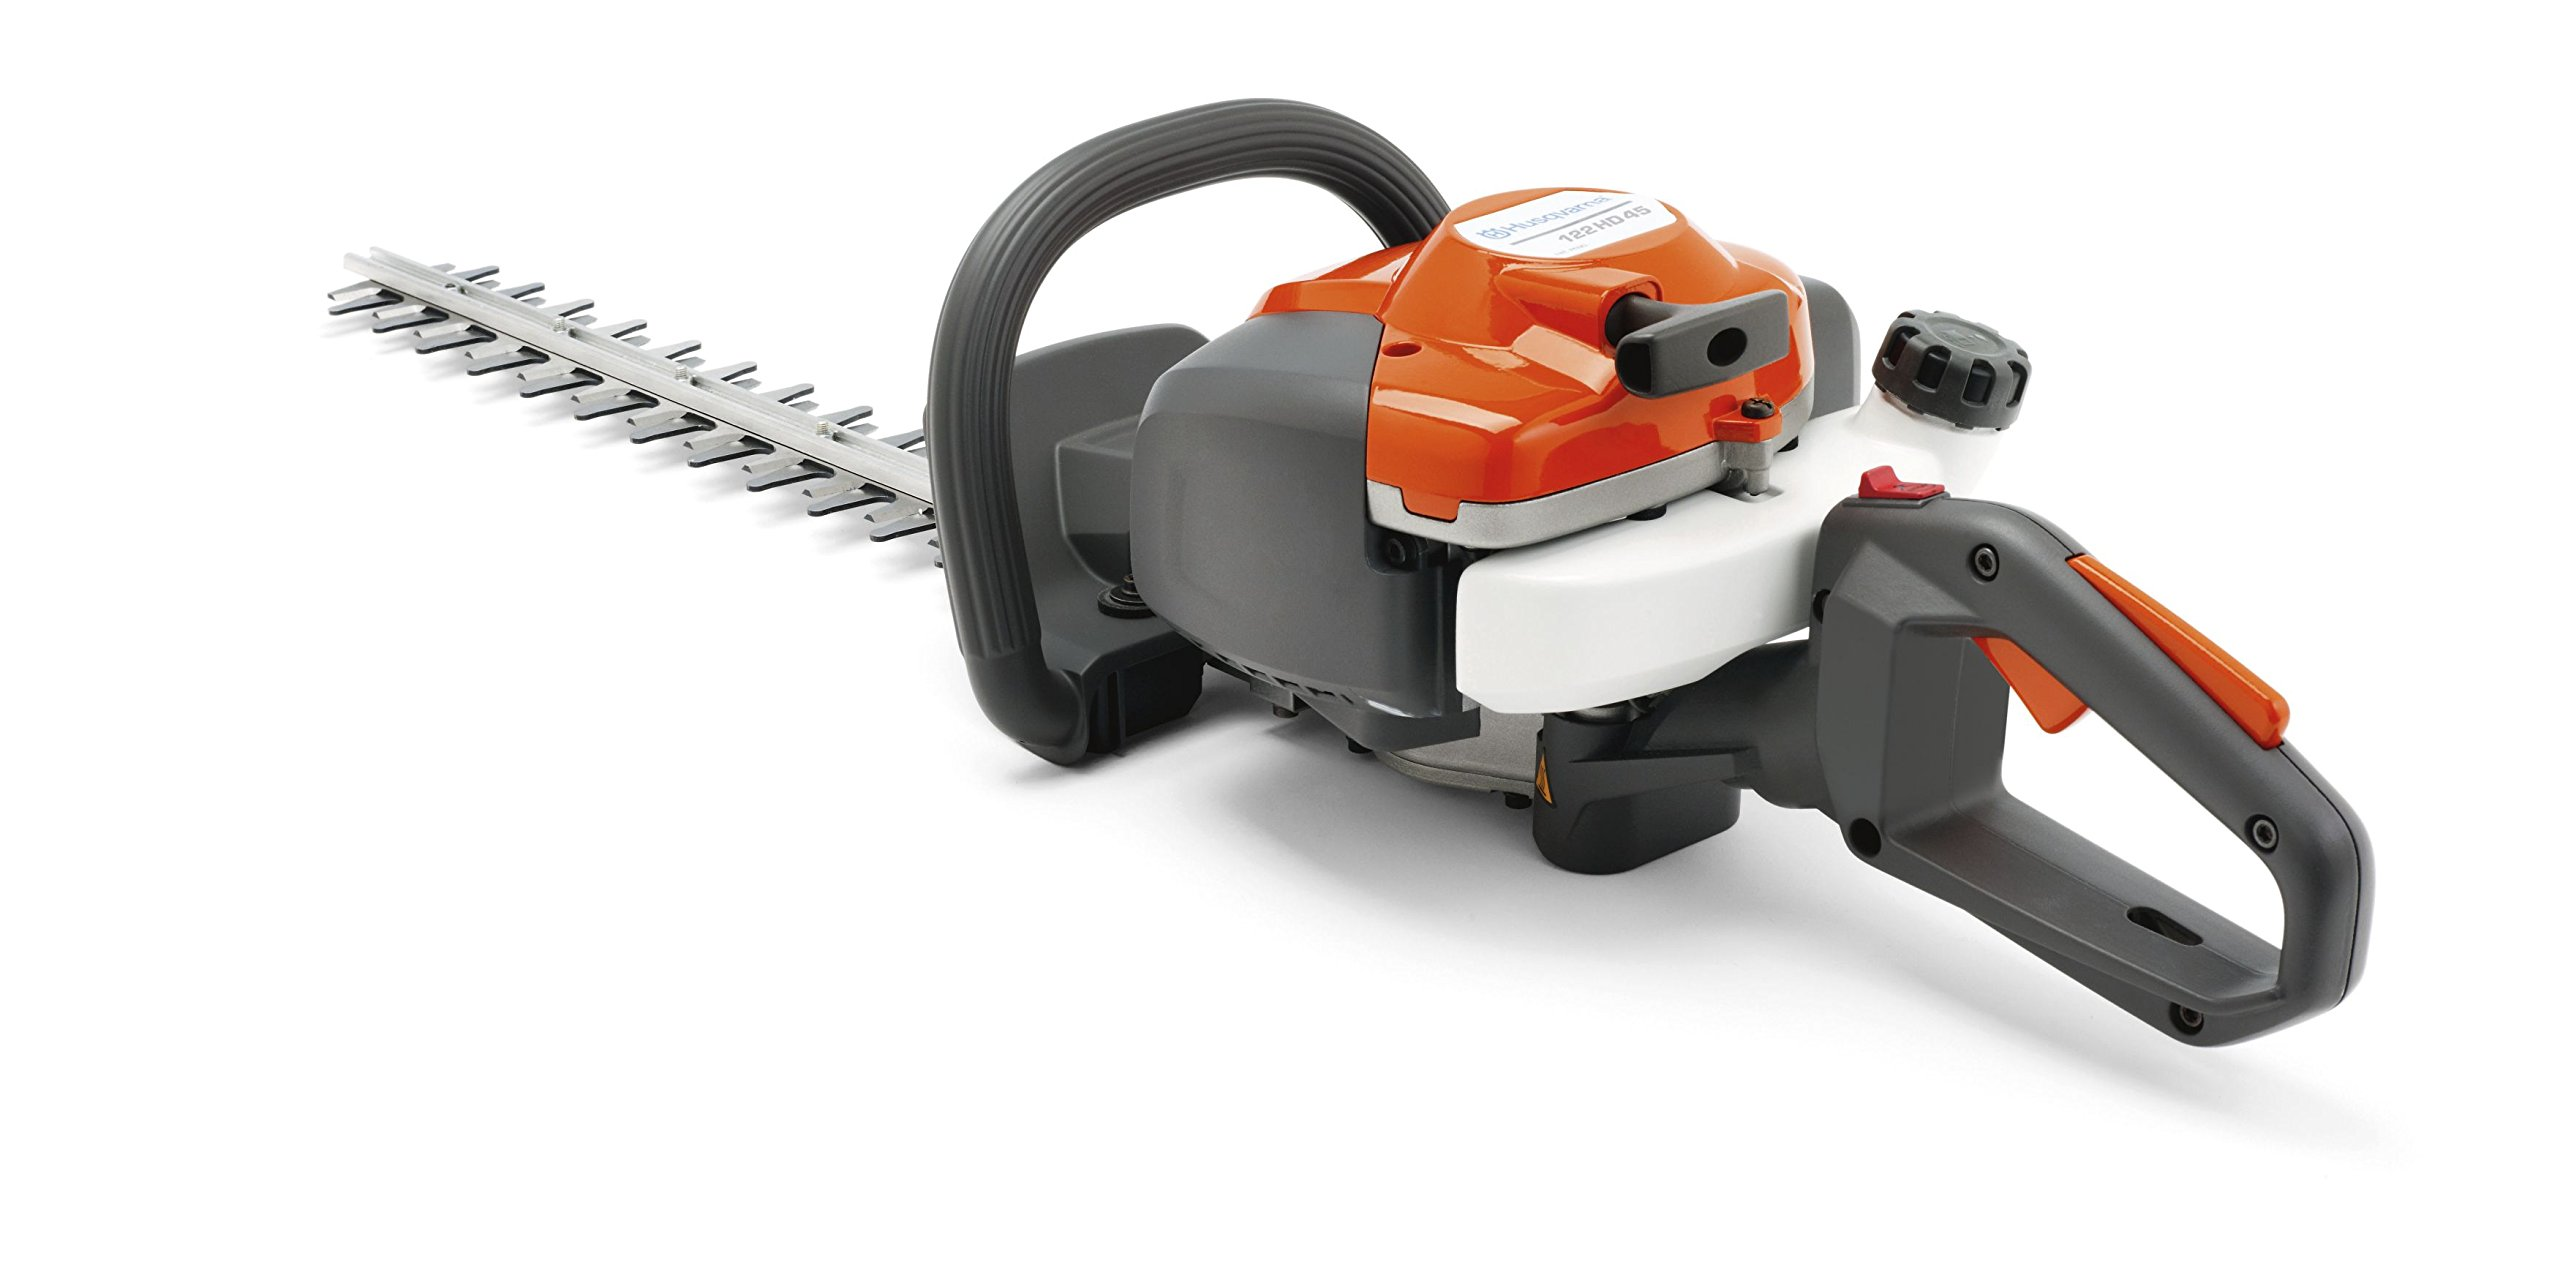 Husqvarna 966532302 Double Sided Homeowner Hedge Trimmer, 21.7 cc/18''/10.3 lb. by Husqvarna